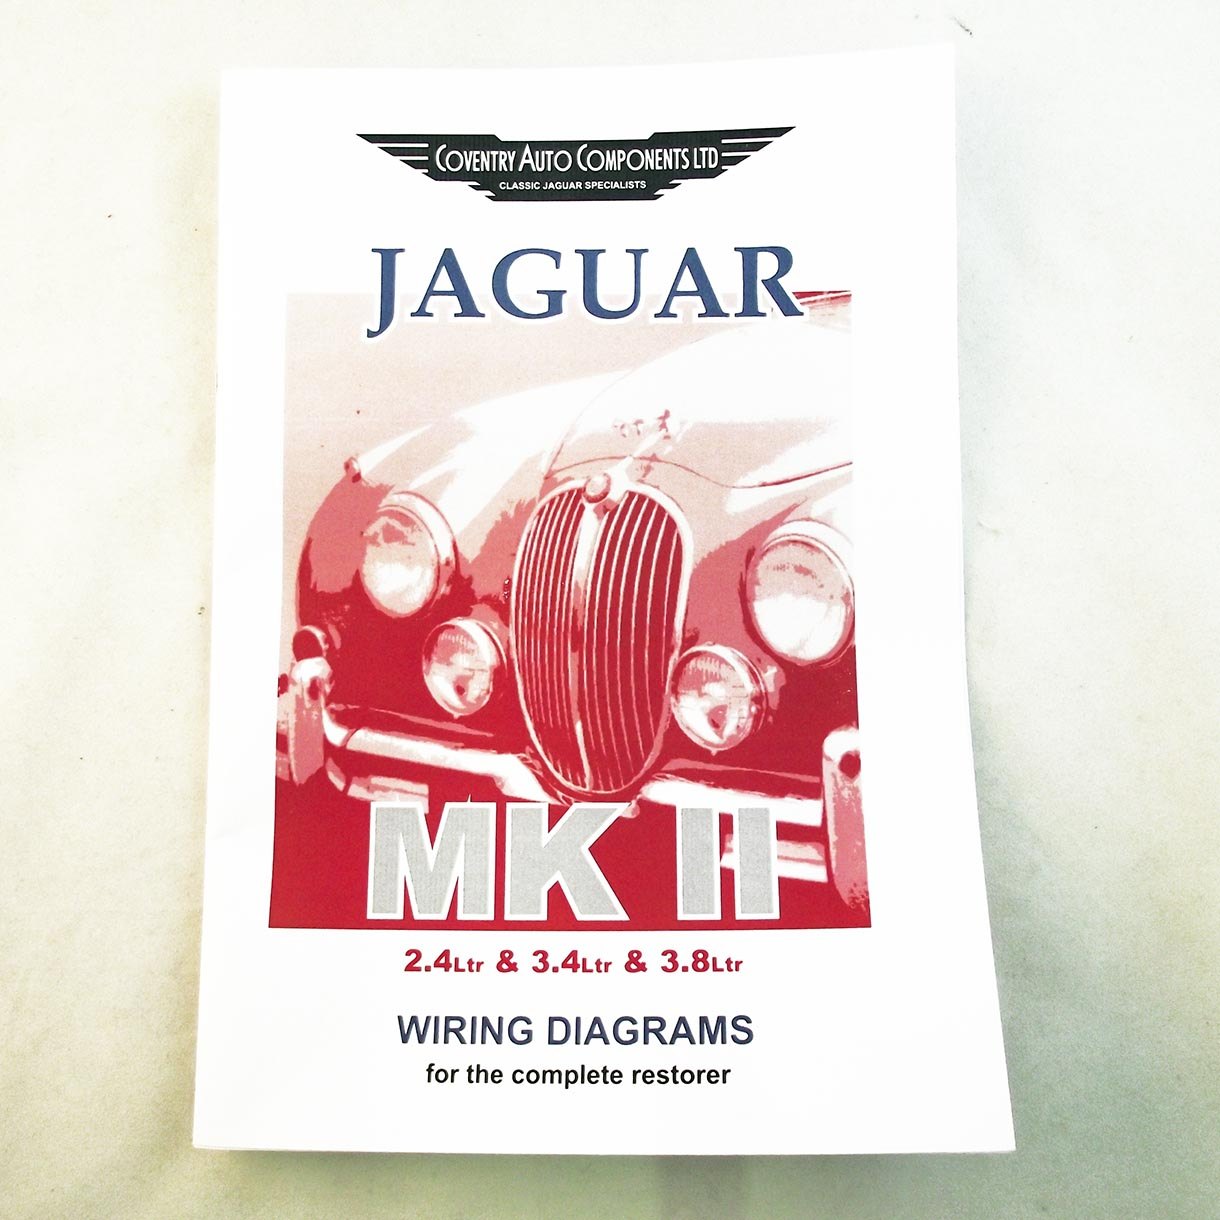 Jaguar MK2 & 240/340 Wiring Instruction Booklet on